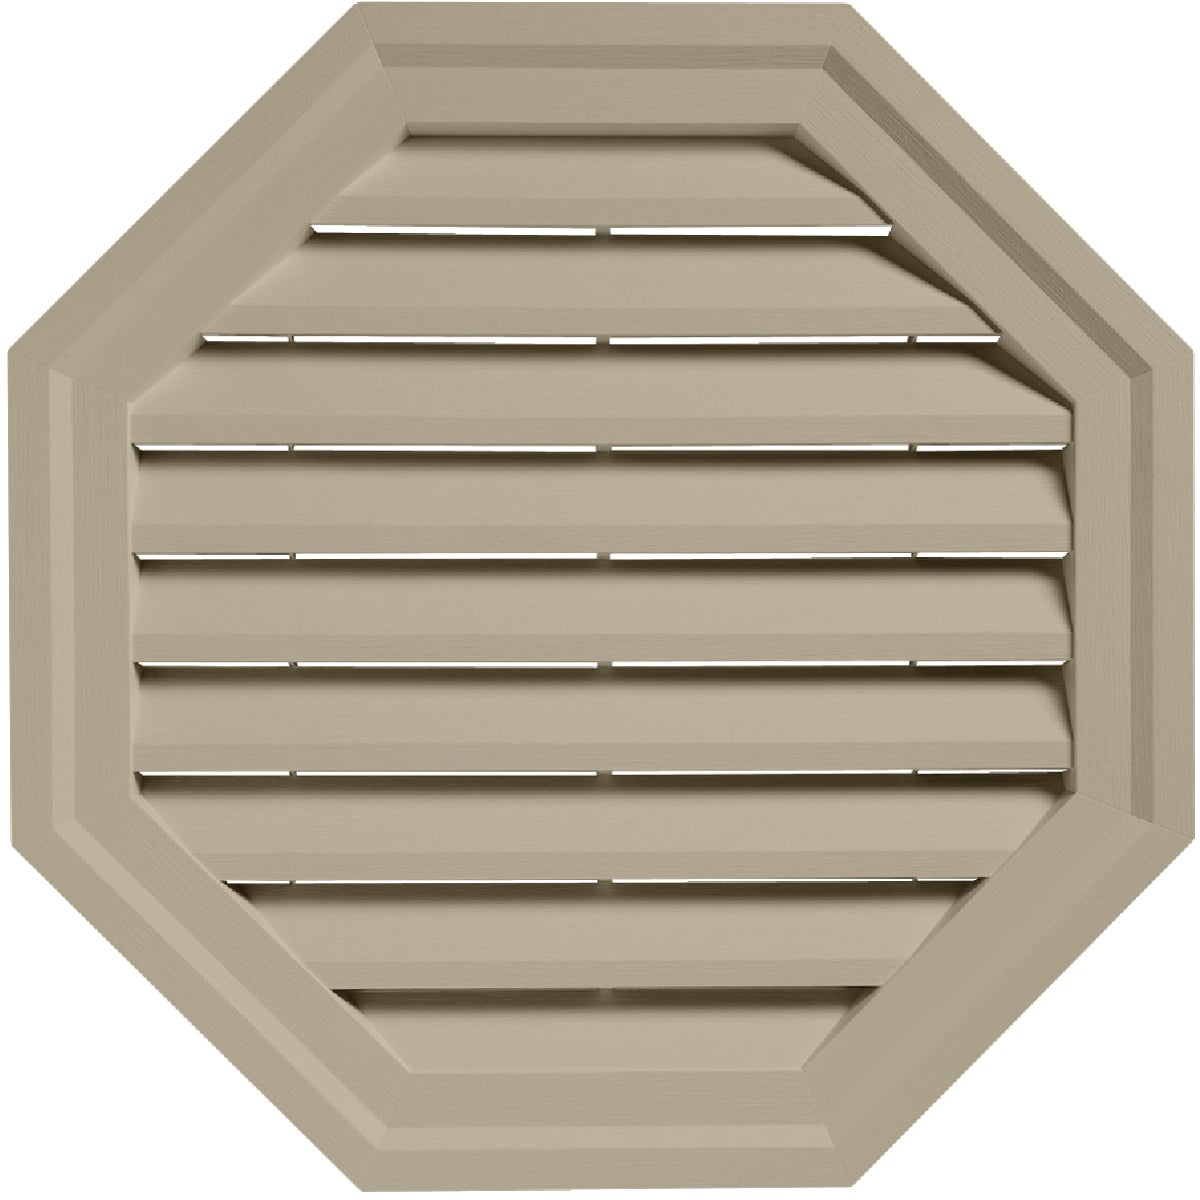 "18"" TAN OCT GABLE VENT - OCTGV18 A7 by Alcoa Home Exteriors"